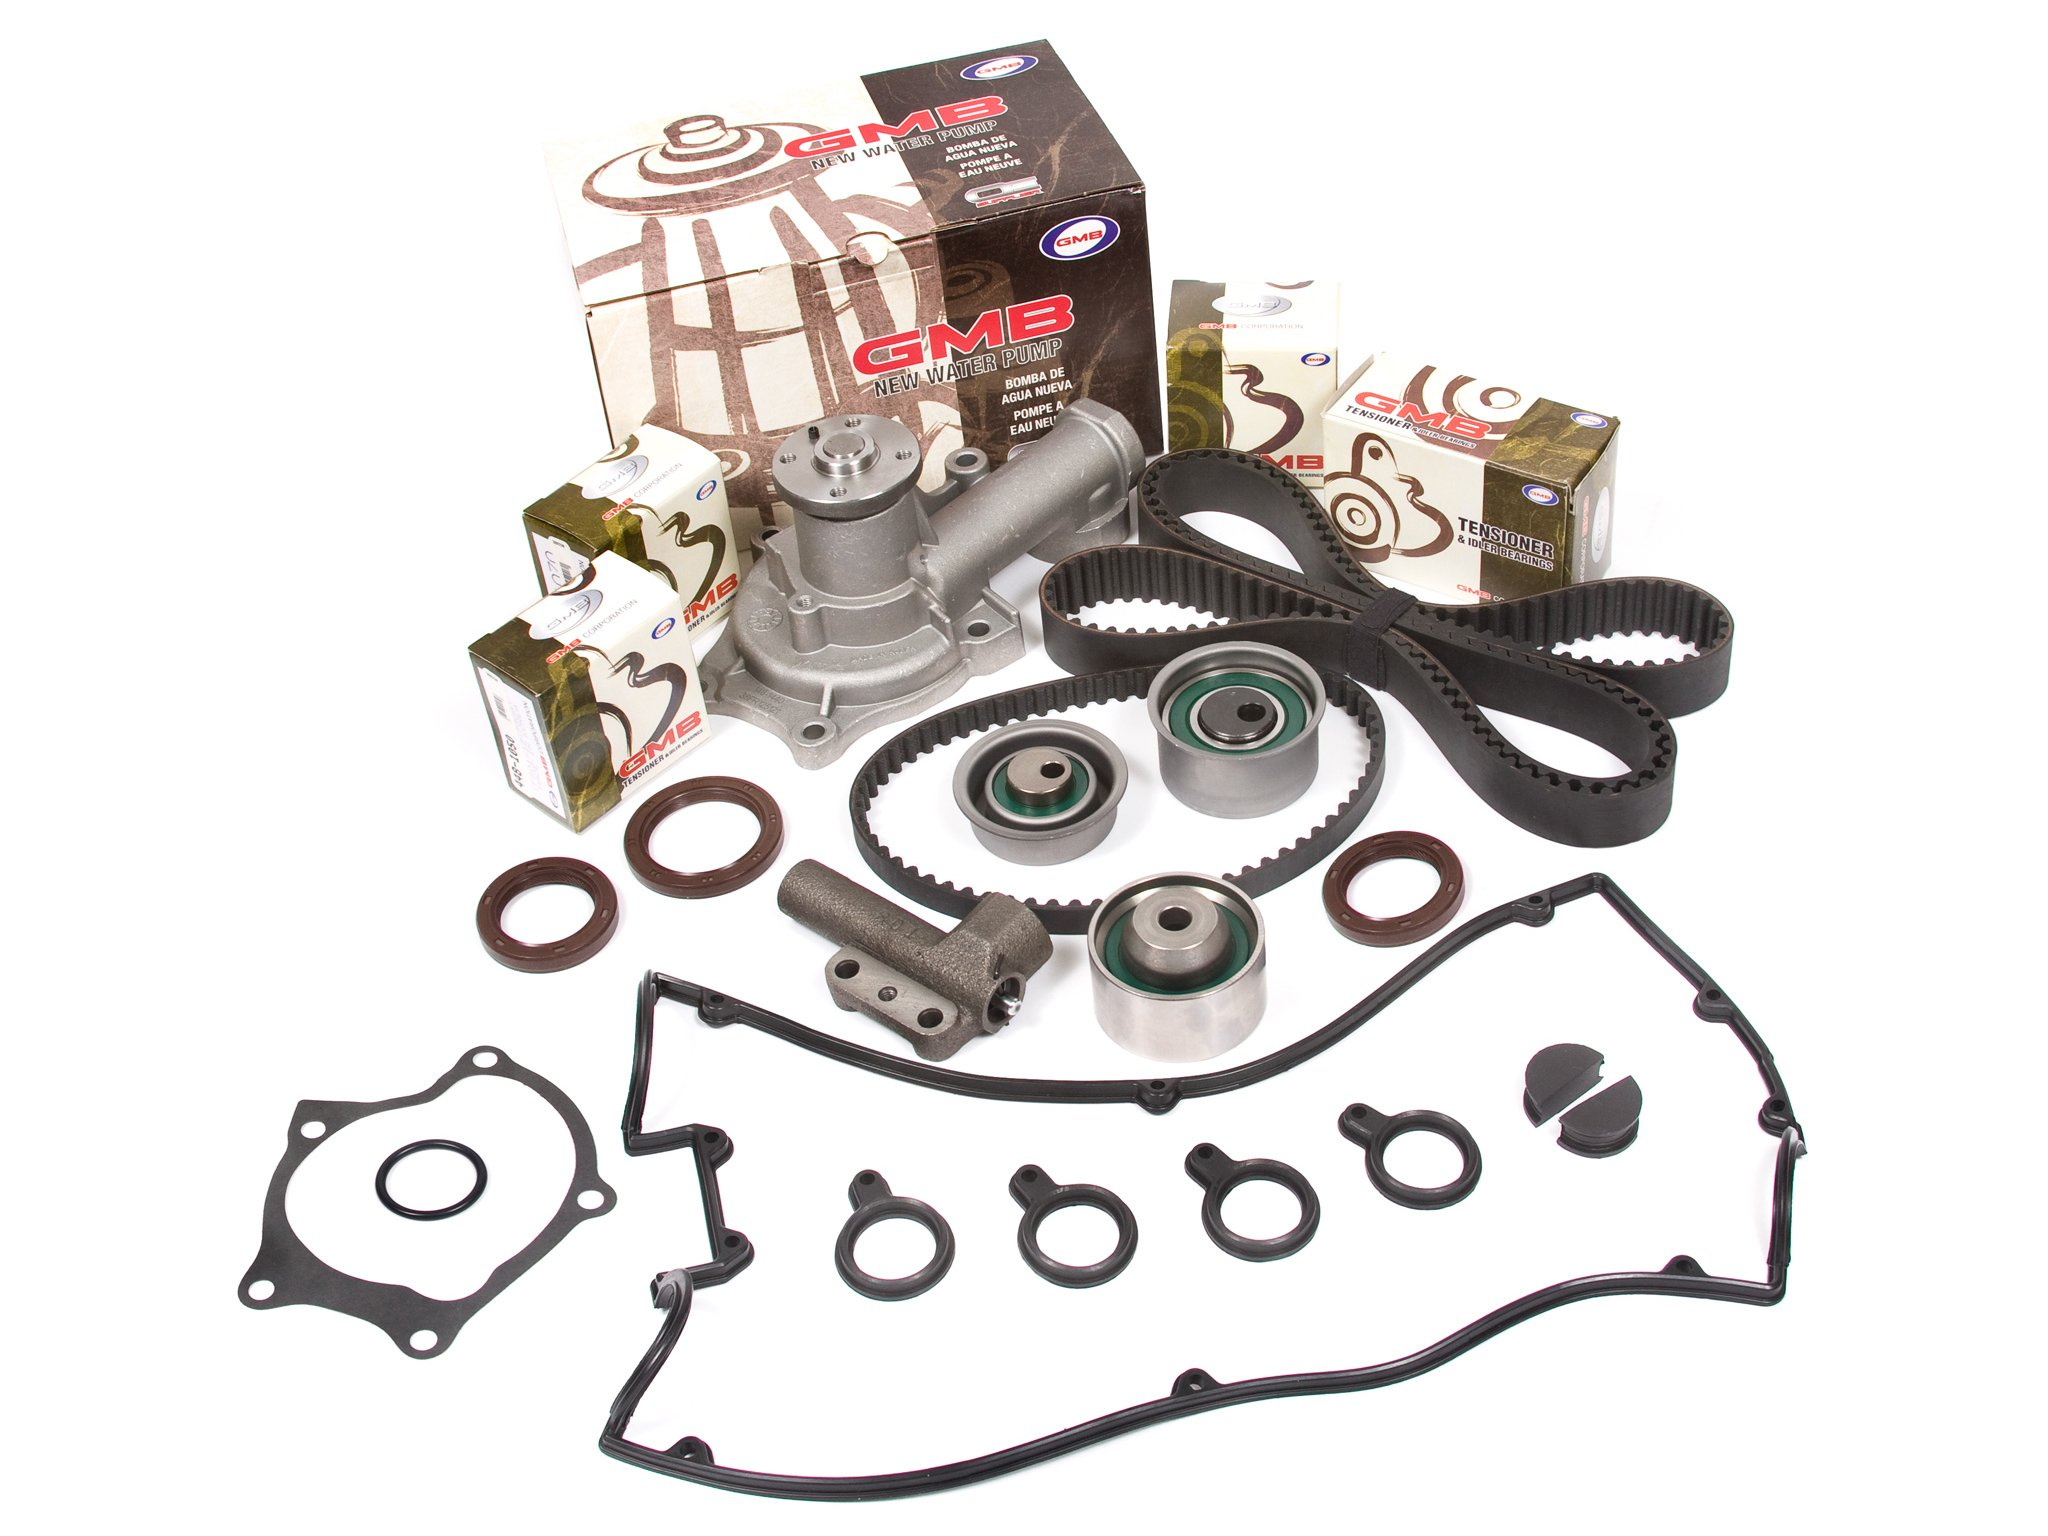 Evergreen TBK167HVC Compatible With 89-92 Mitsubishi Eagle 2.0L TURBO 4G63T Timing Belt Kit Valve Cover Gasket GMB Water Pump